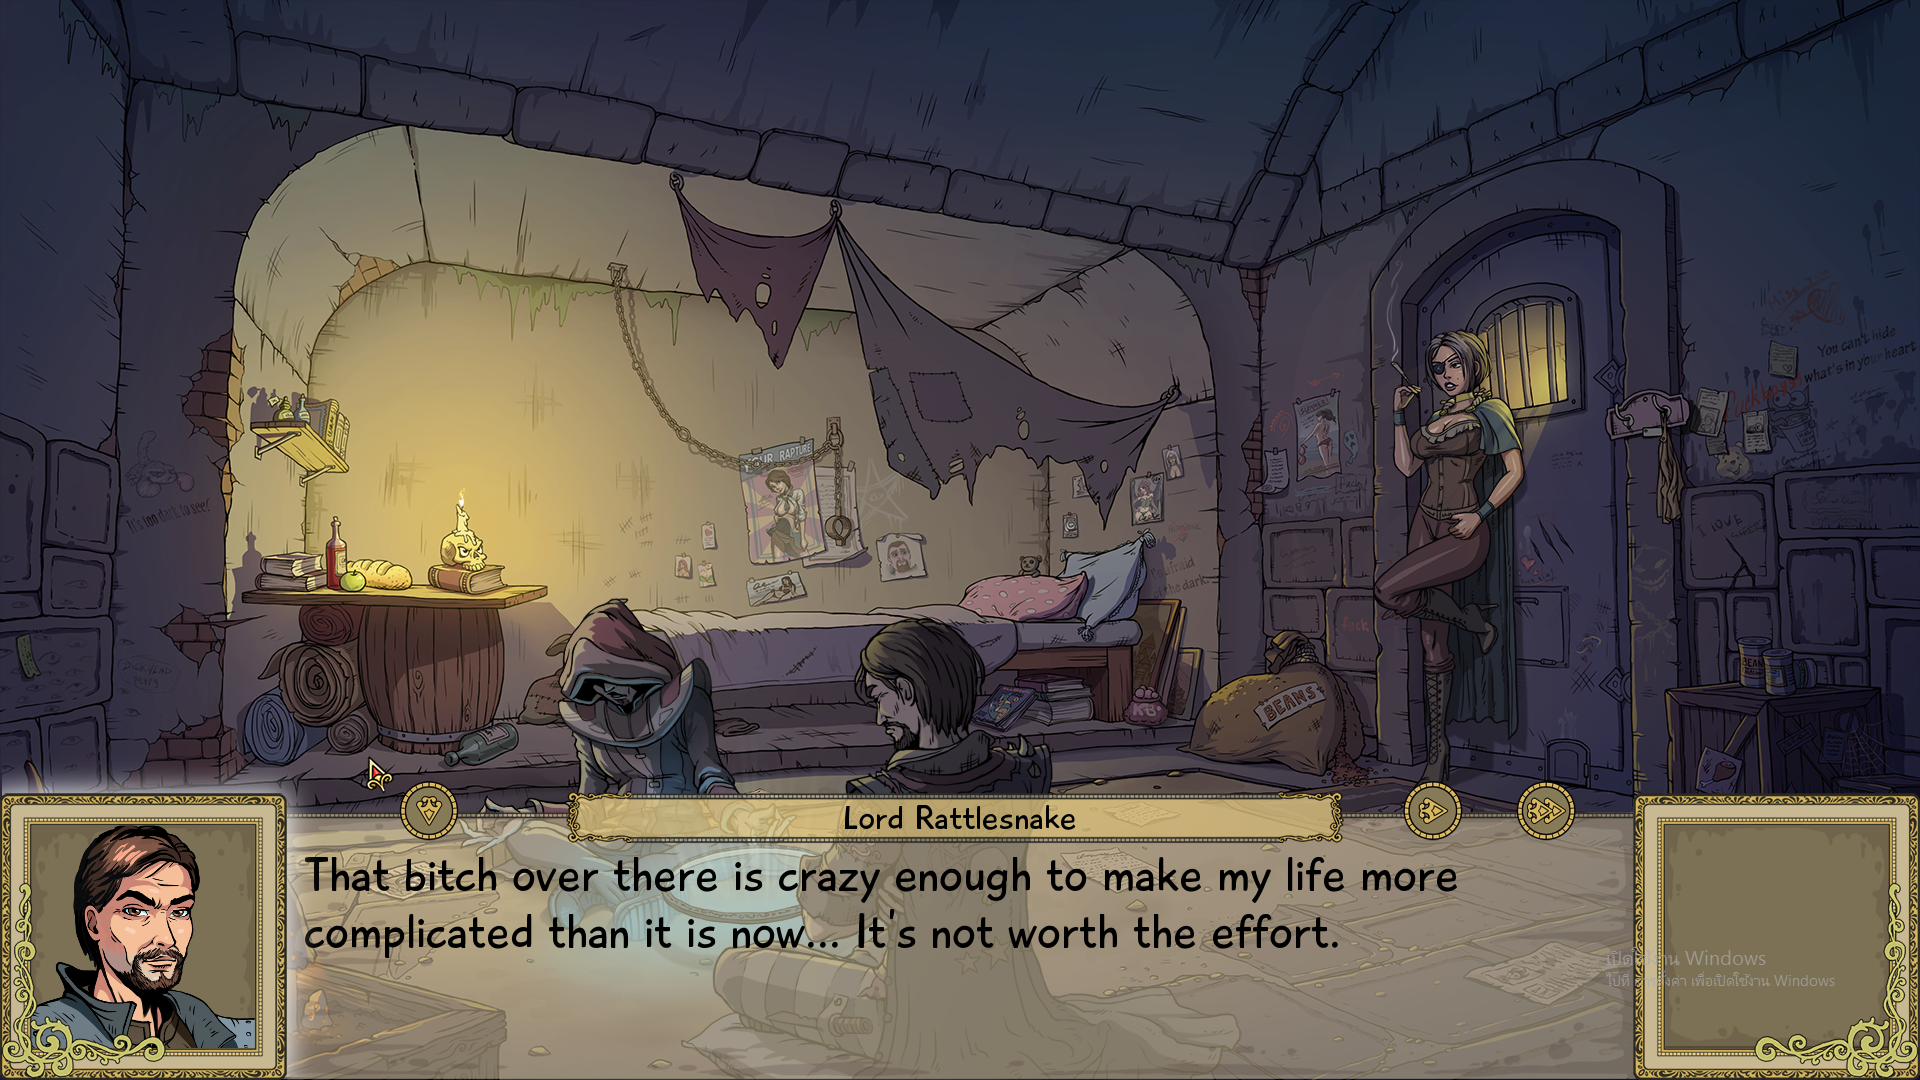 [VN] - [RenPy] Innocent Witches [v0.6.1A] [Sad Crab